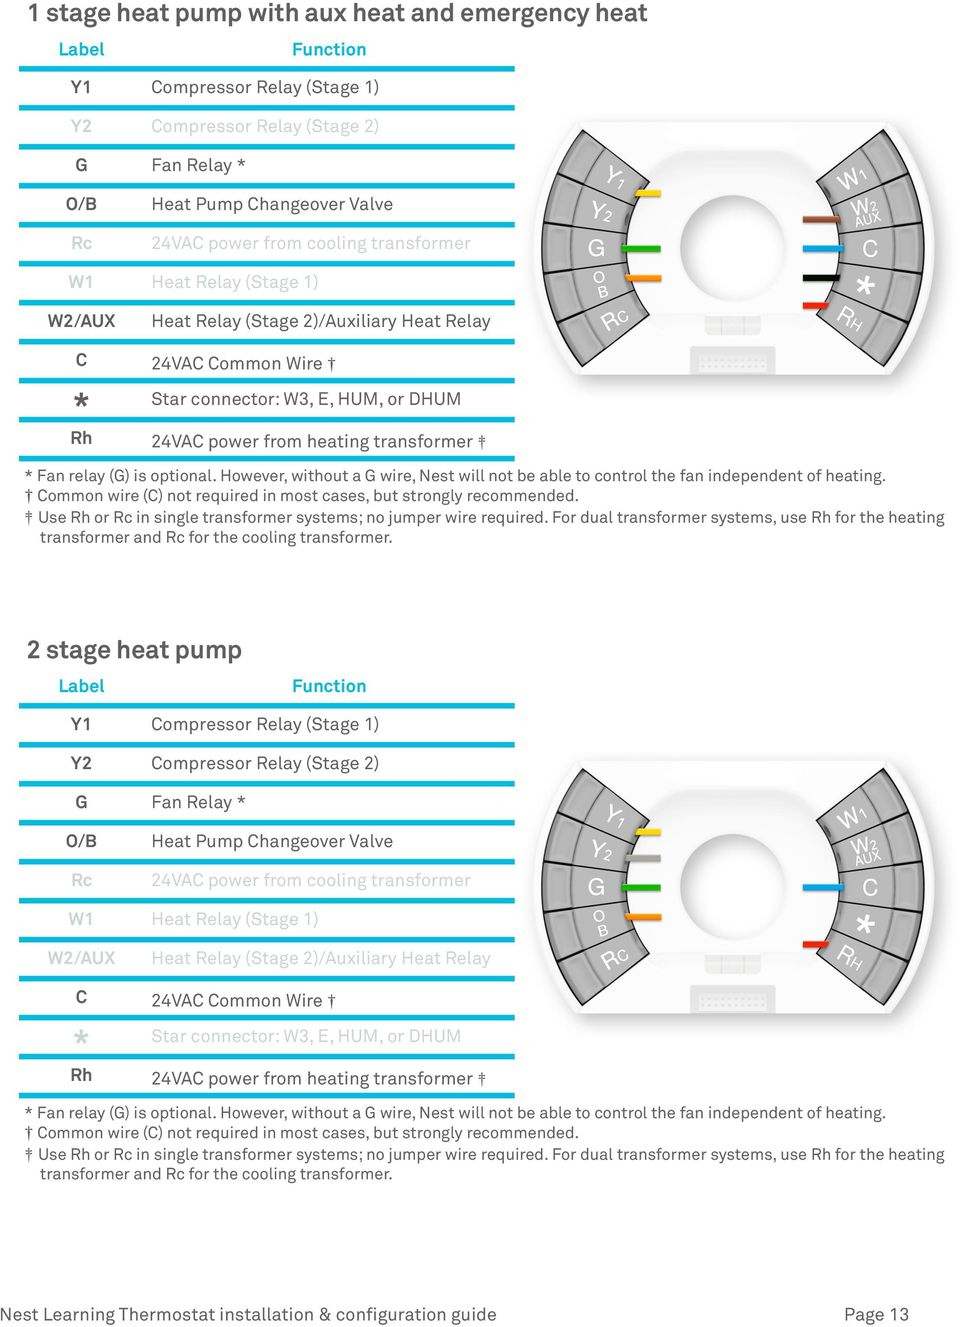 Nest Thermostat Wiring Diagram For Heat Pump | Wiring Diagram - 4 Wire Nest Wiring Diagram